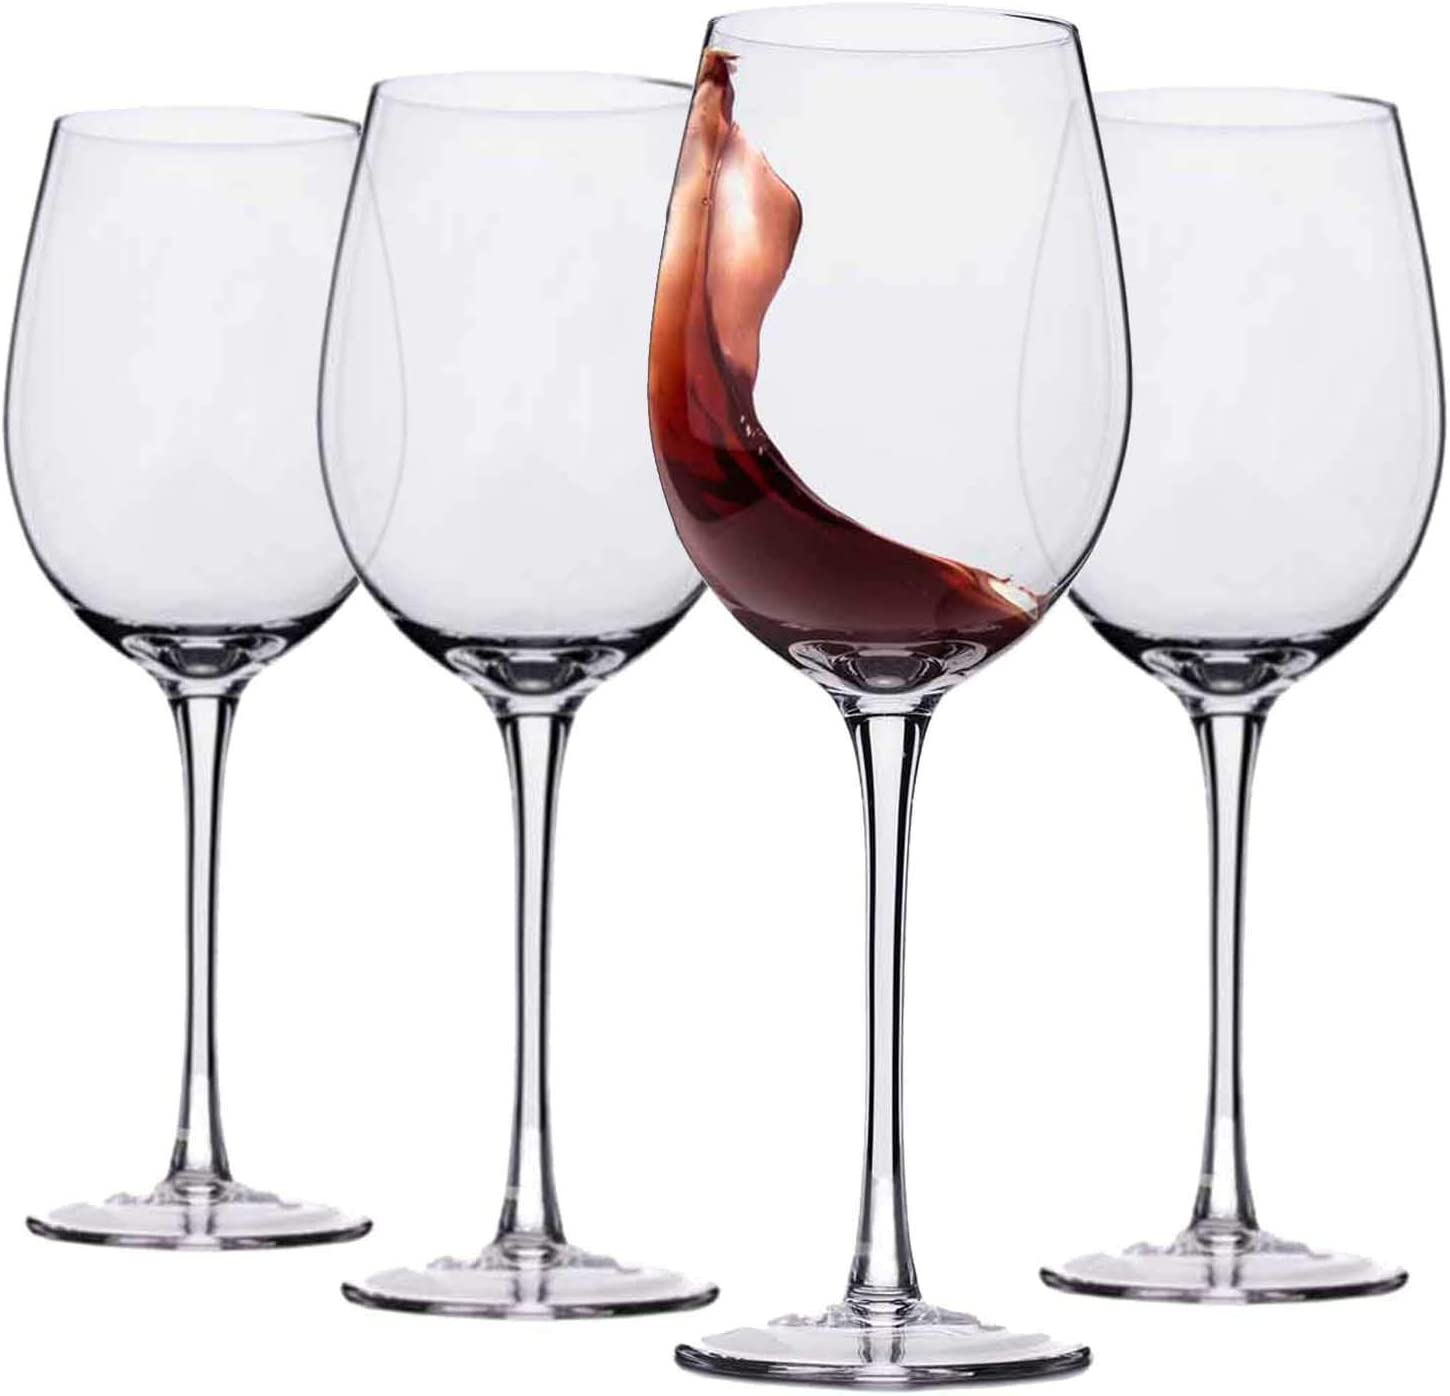 Hand Blown Italian Style Crystal Red or White Wine Glasses - Lead-Free Premium Crystal Clear Glass - Set of 4 - 18 Ounce - Safer Packaging for Any Occasion